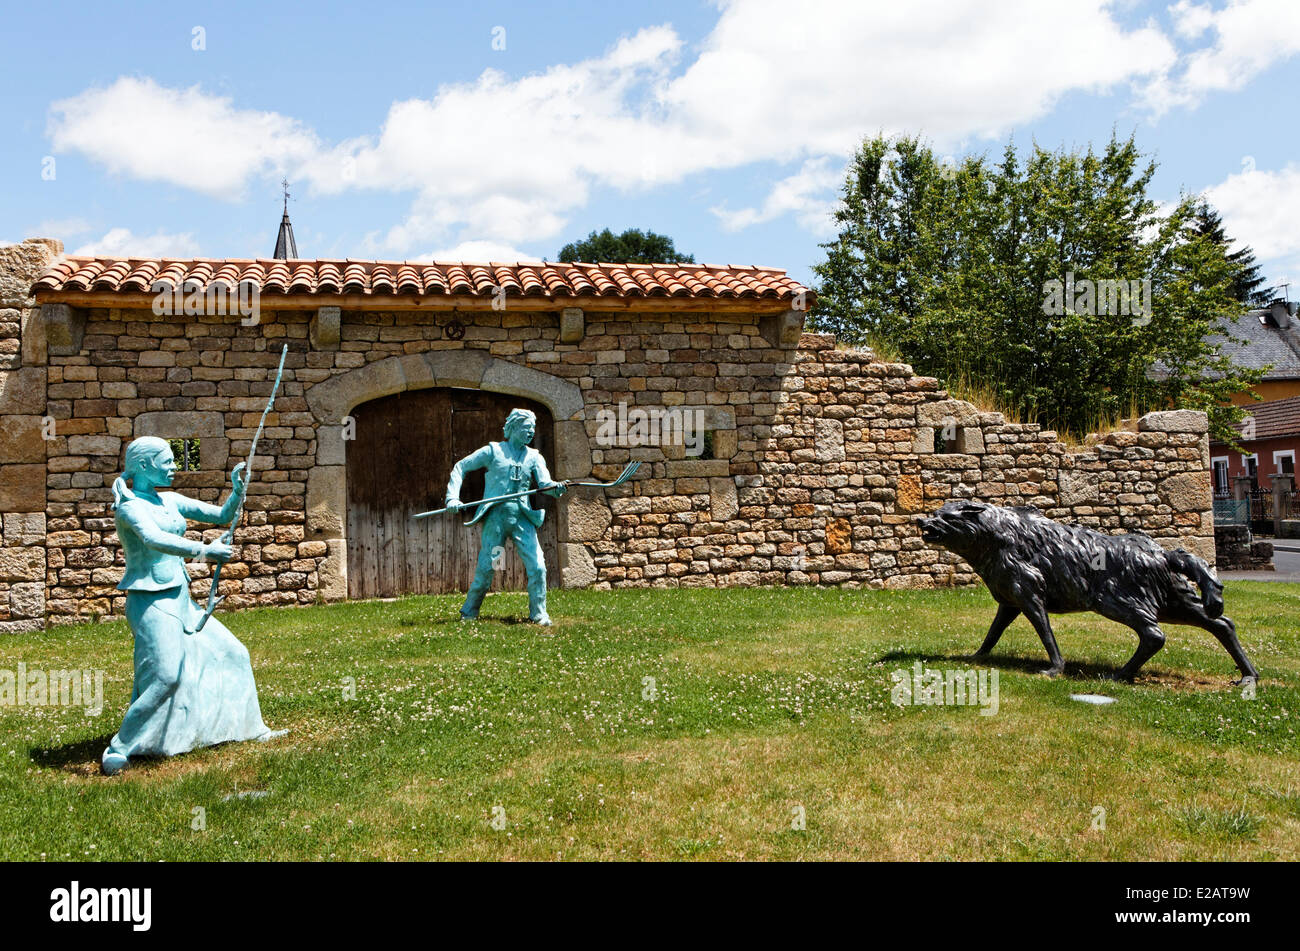 France, Lozere, Le Malzieu Ville, representation of an attack of the Beast of Gevaudan at the entrance of the village - Stock Image